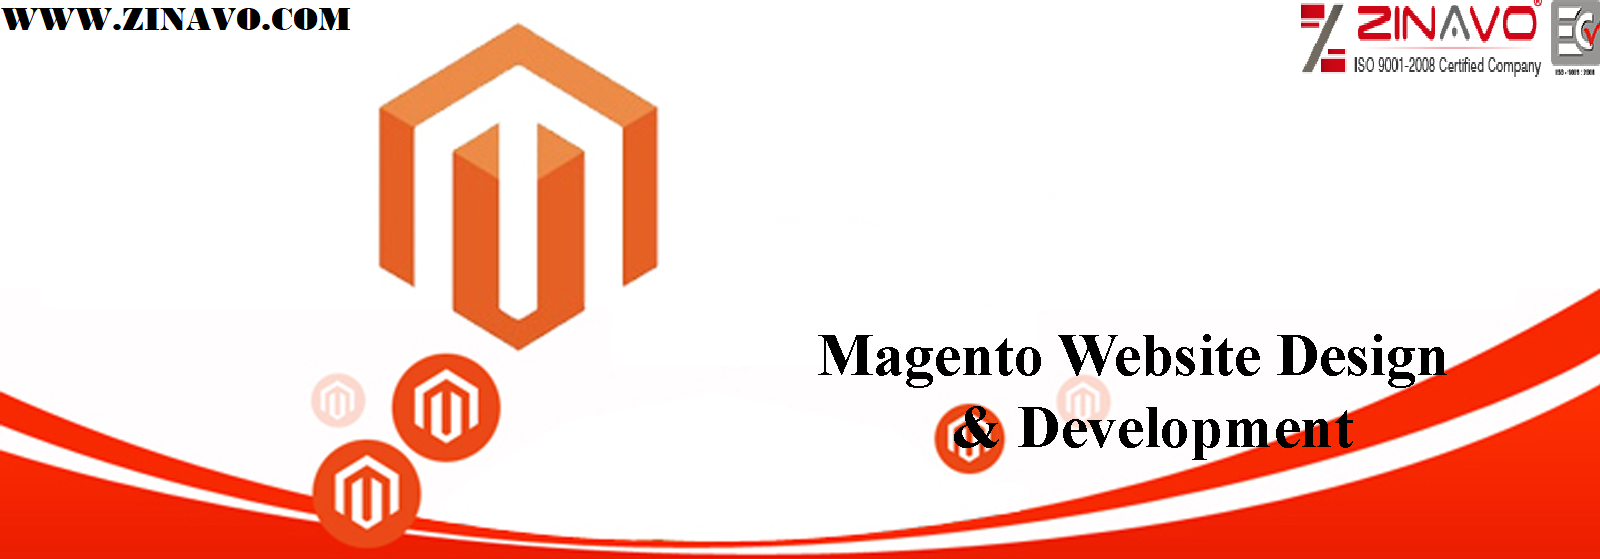 Magento Website Design And Development Company in Ahmedabad-Services-Other Services-Ahmedabad